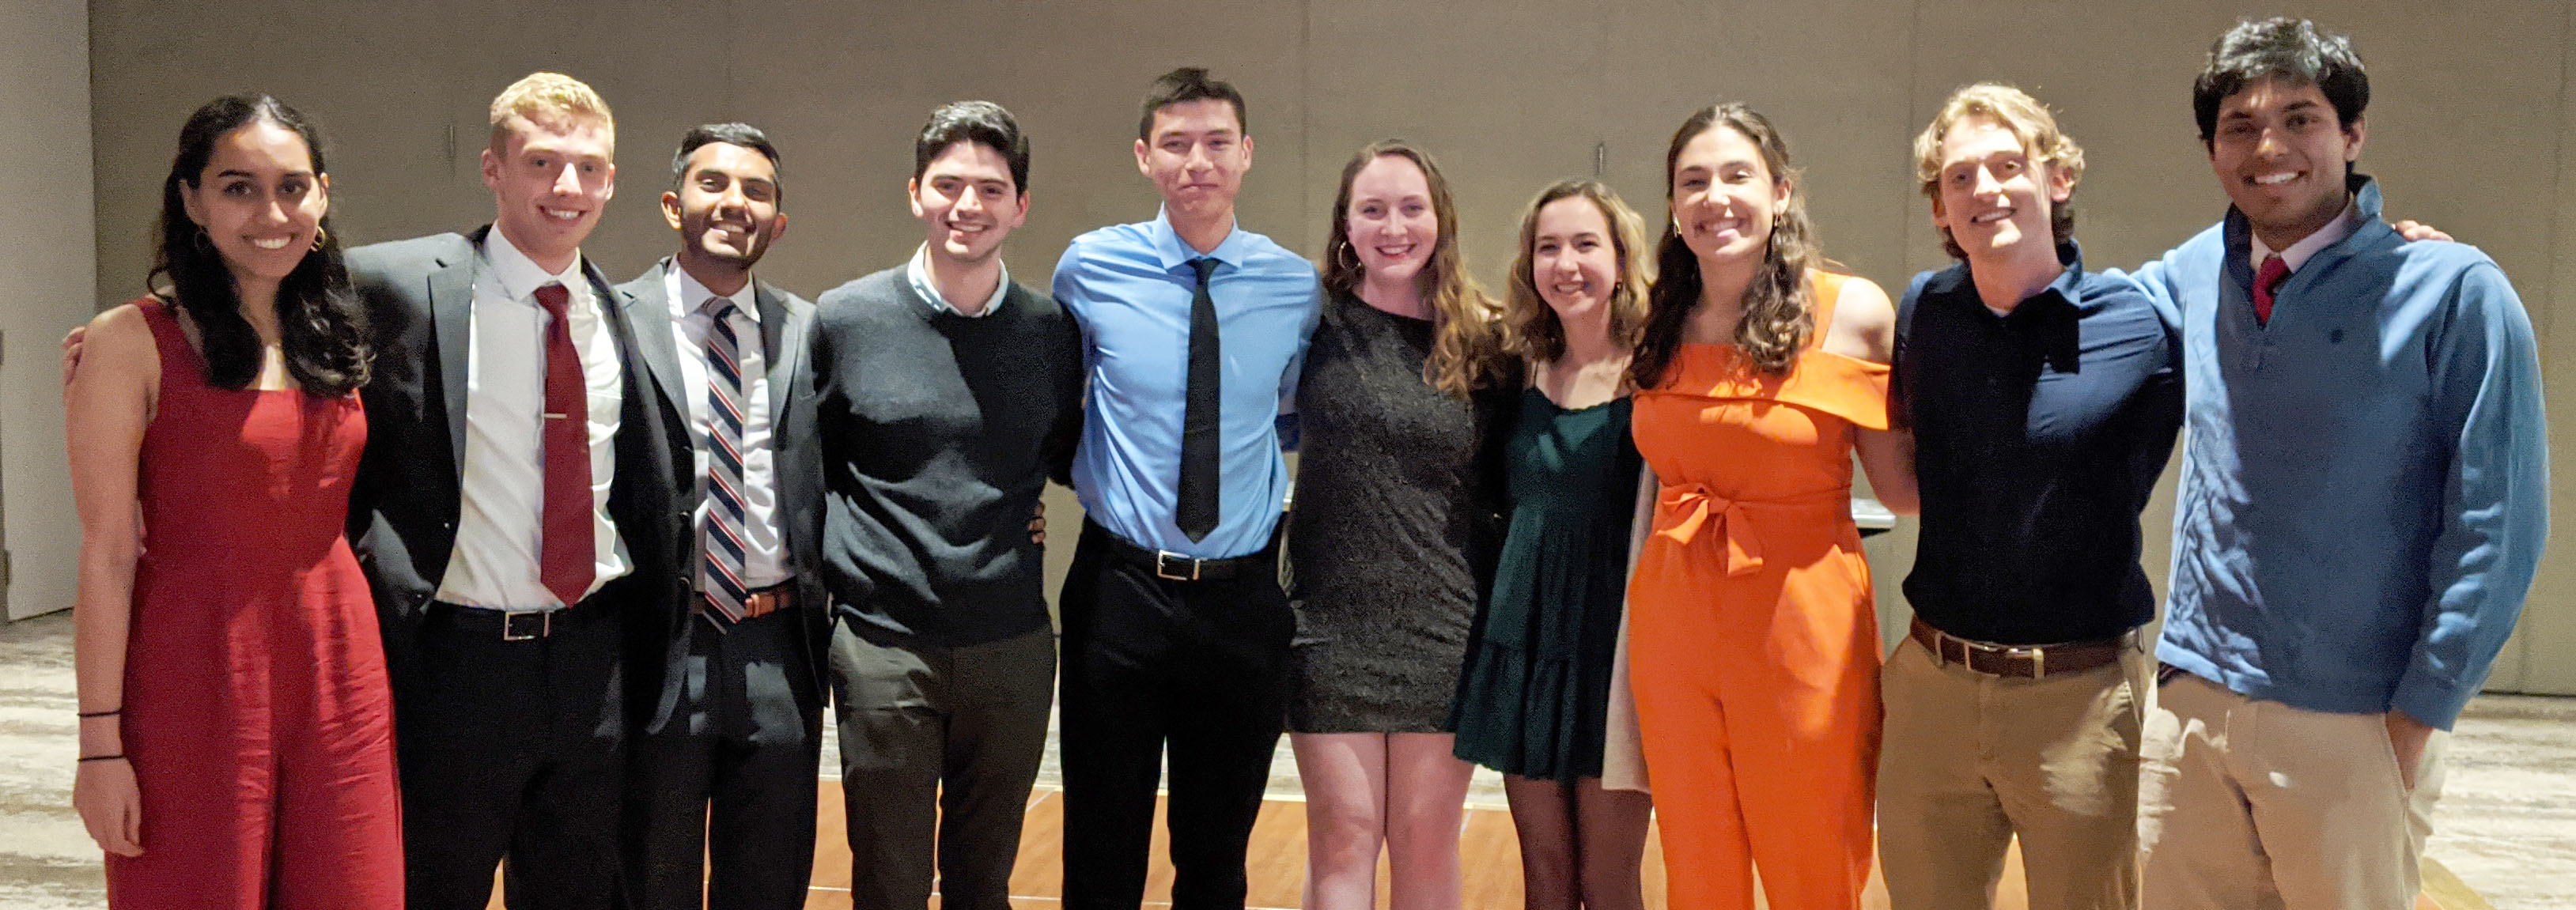 HKN Officers - Fall 2019 term